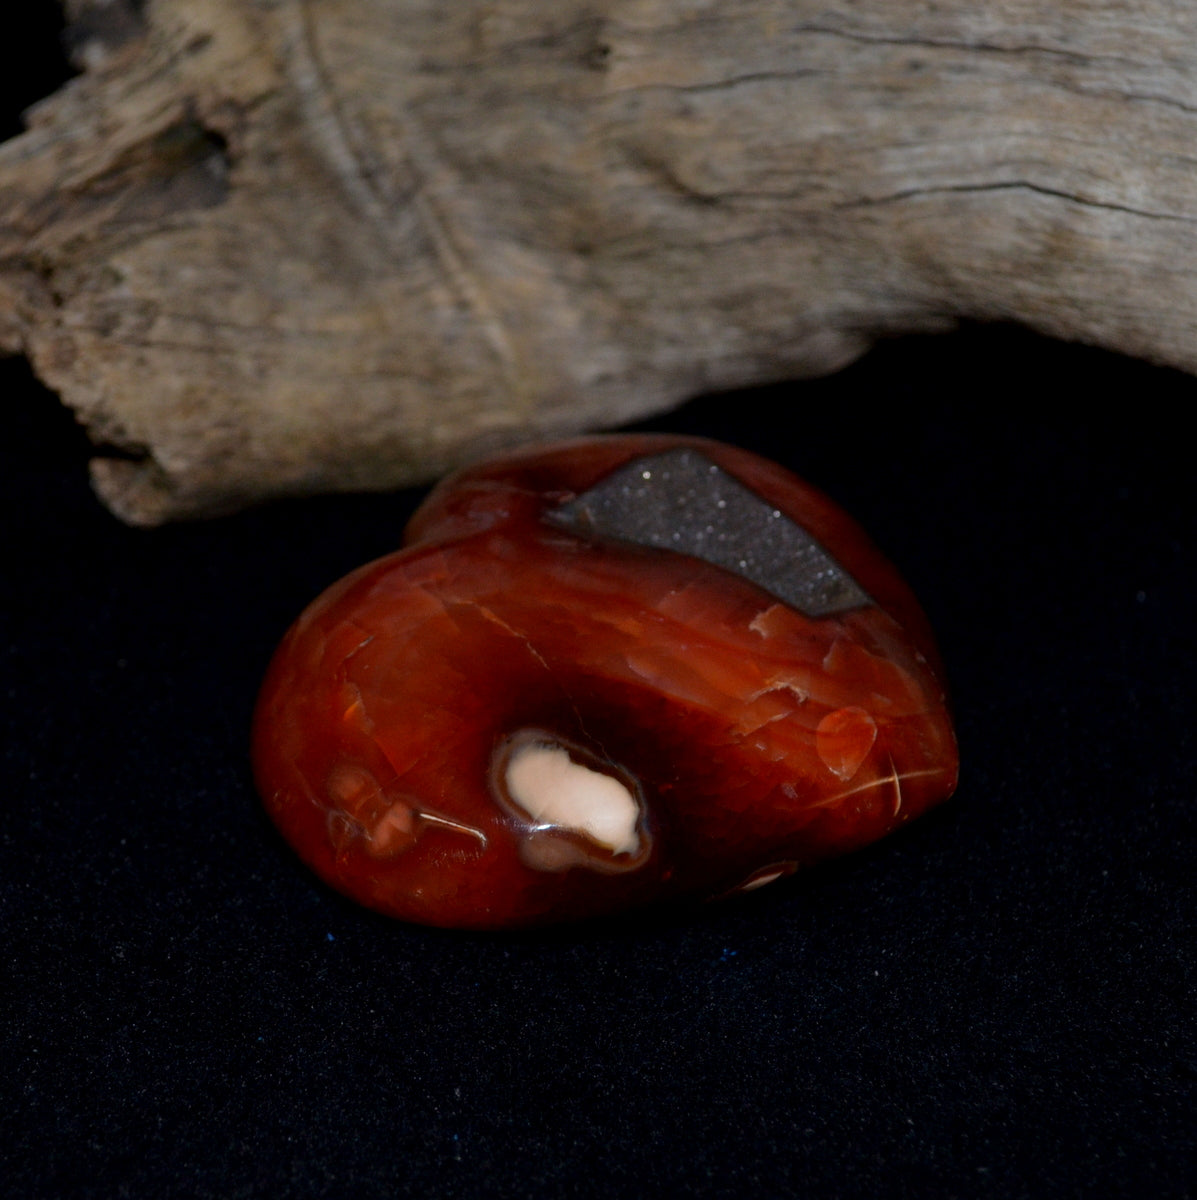 Large Carnelian Puffy Heart - Courage Personal Power Creativity - Buy Now at Illiom Crystals - Now with Afterpay